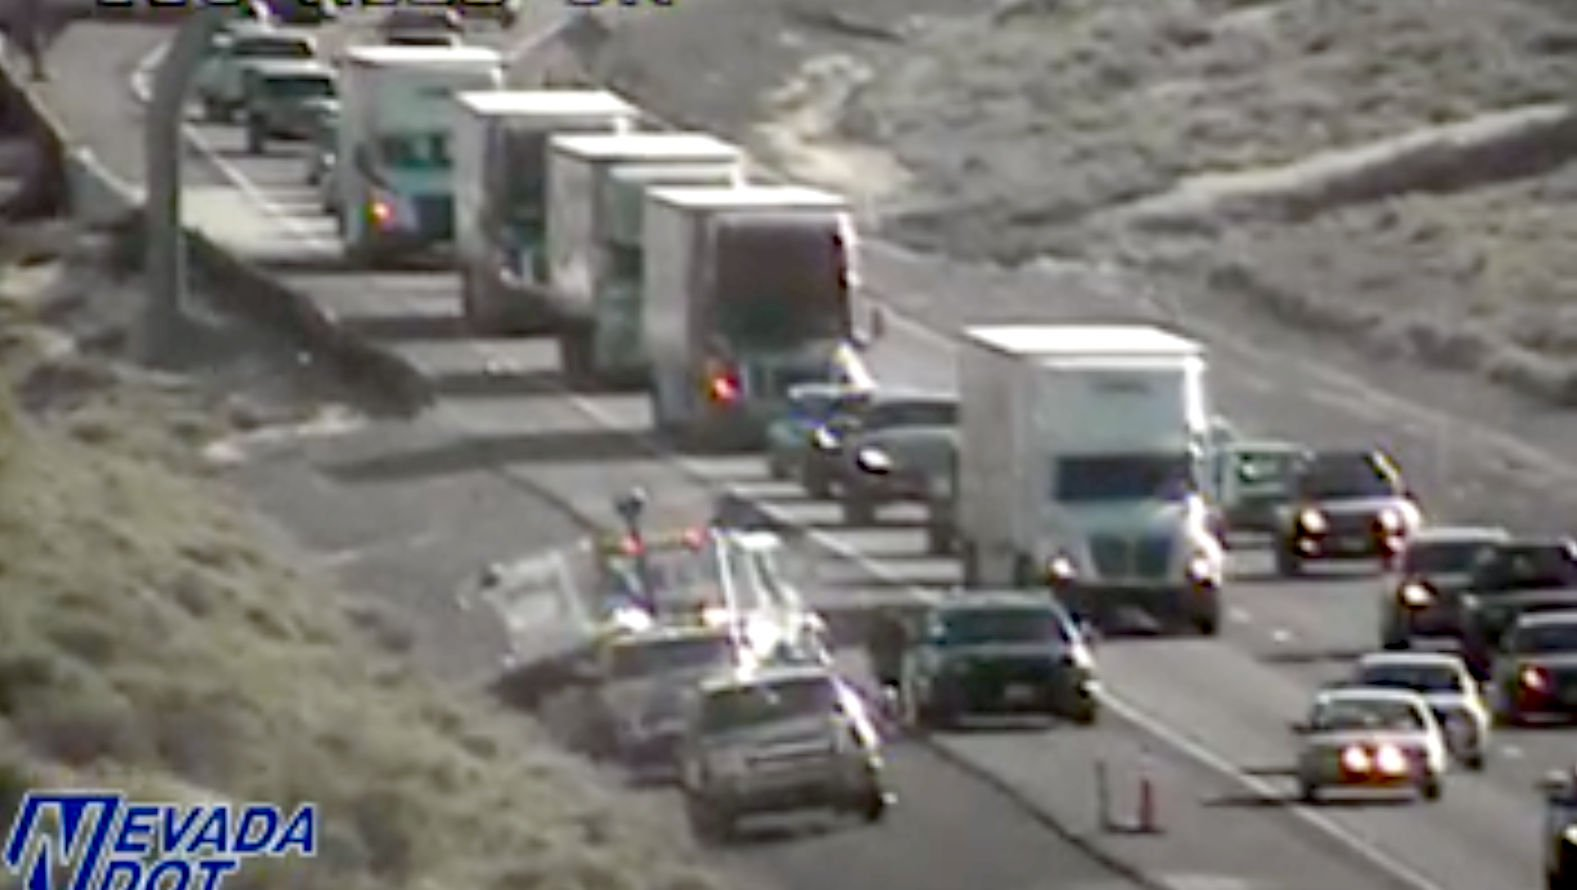 Eastbound I-80 traffic near Robb Drive slowed after a boat came off a trailer. https://t.co/XZdwrlzuRI https://t.co/4tXDUur43g